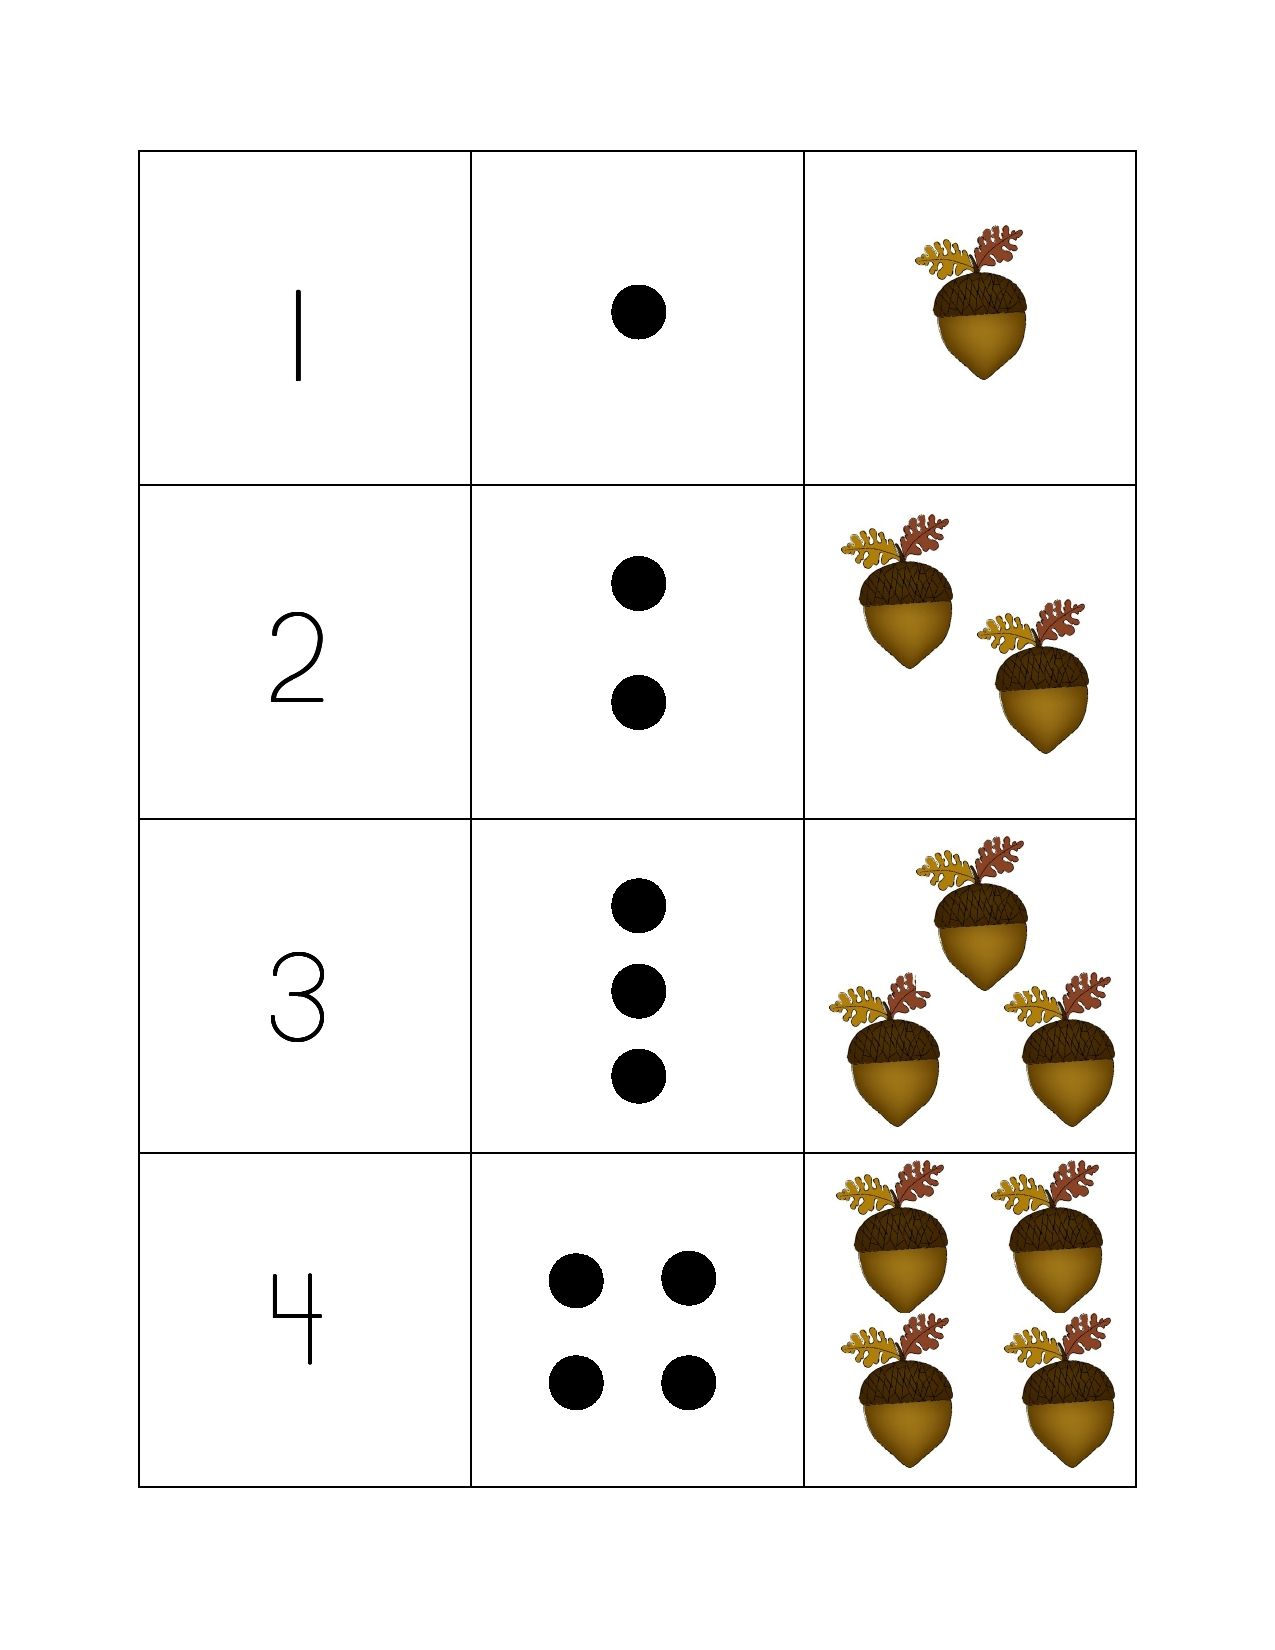 The Acorn Counting Game Teaches Number Recognition As Well As Basic Counting Skills